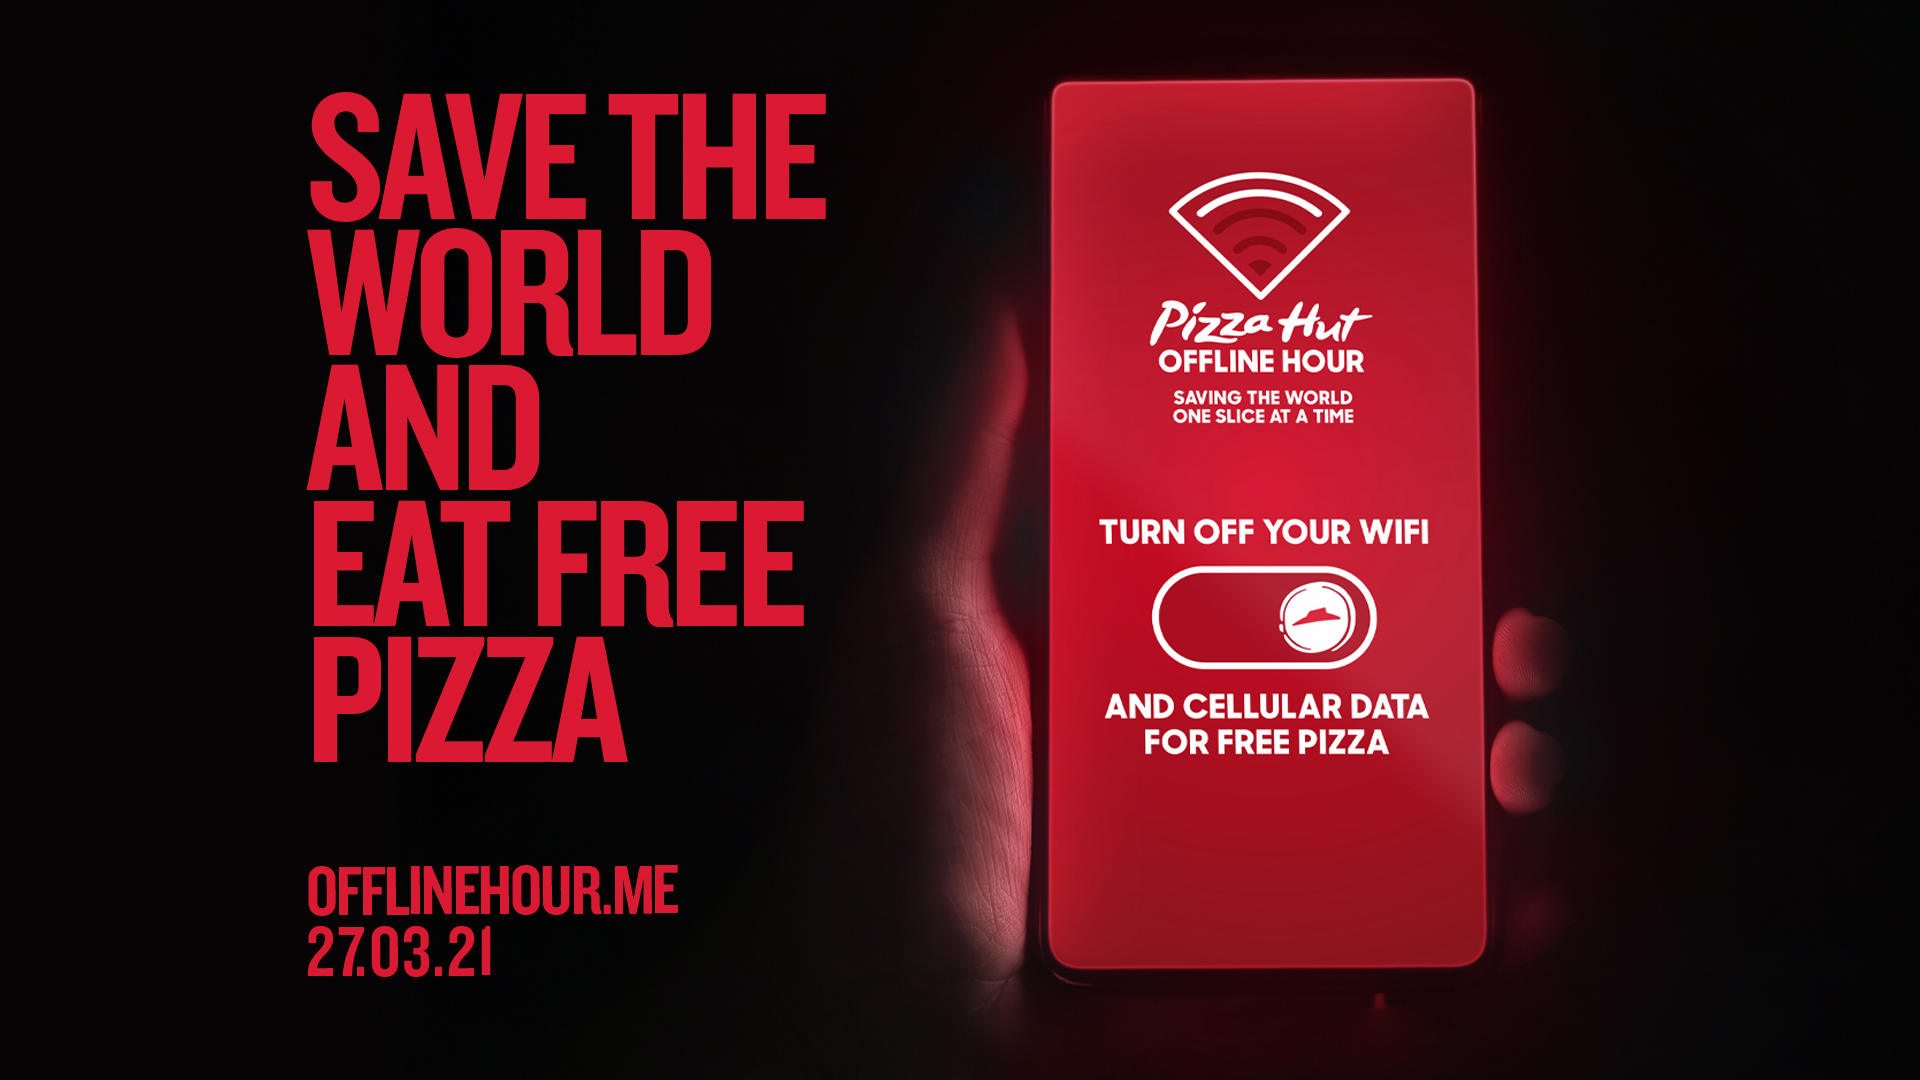 Customers who disconnected their phones for an hour were rewarded with free pizza.